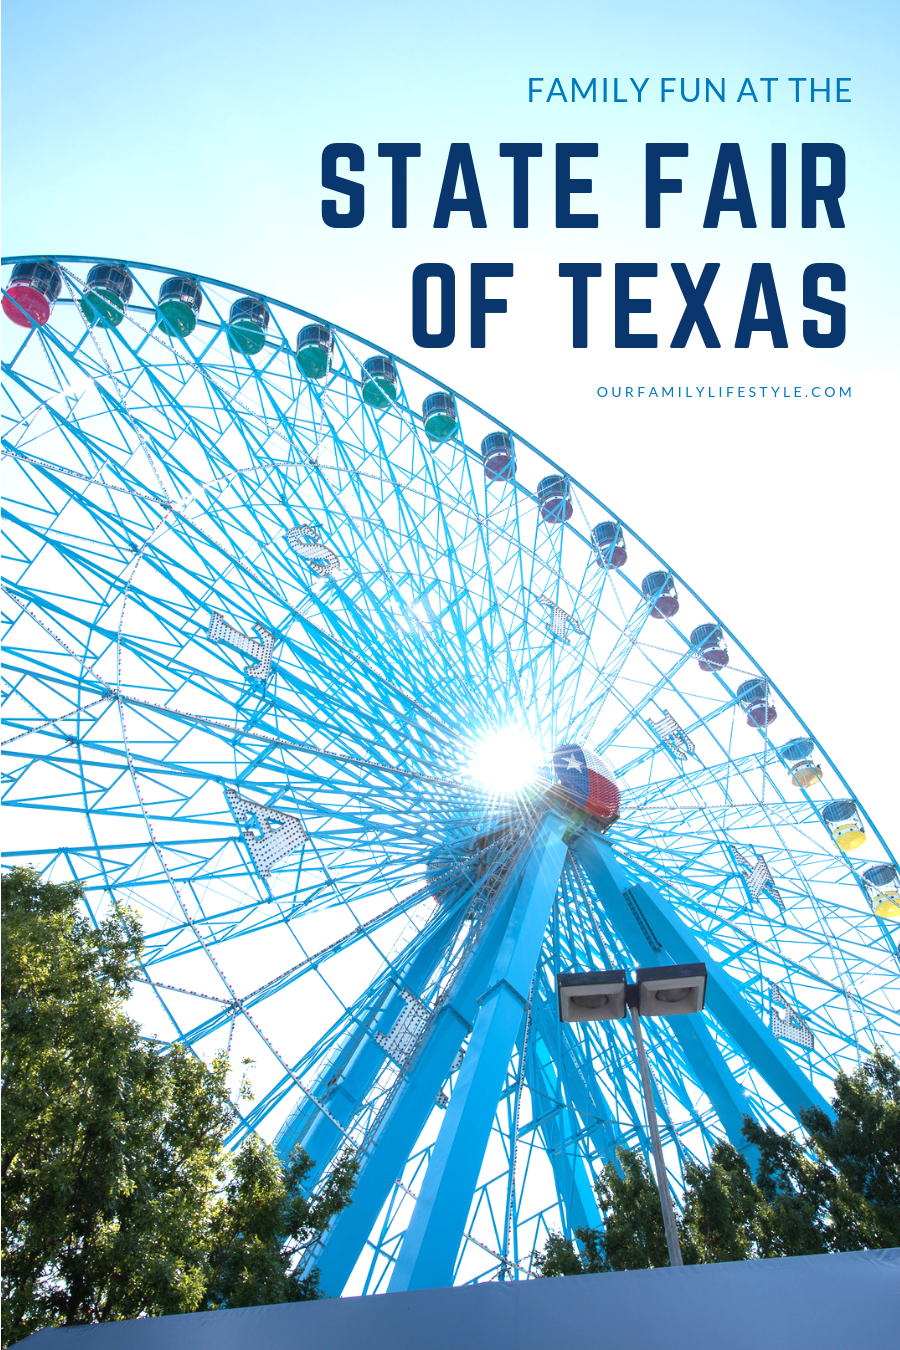 Celebrating 132 years of fall tradition, the State Fair of Texas in Dallas returns for another season of food, festivities, and family fun.